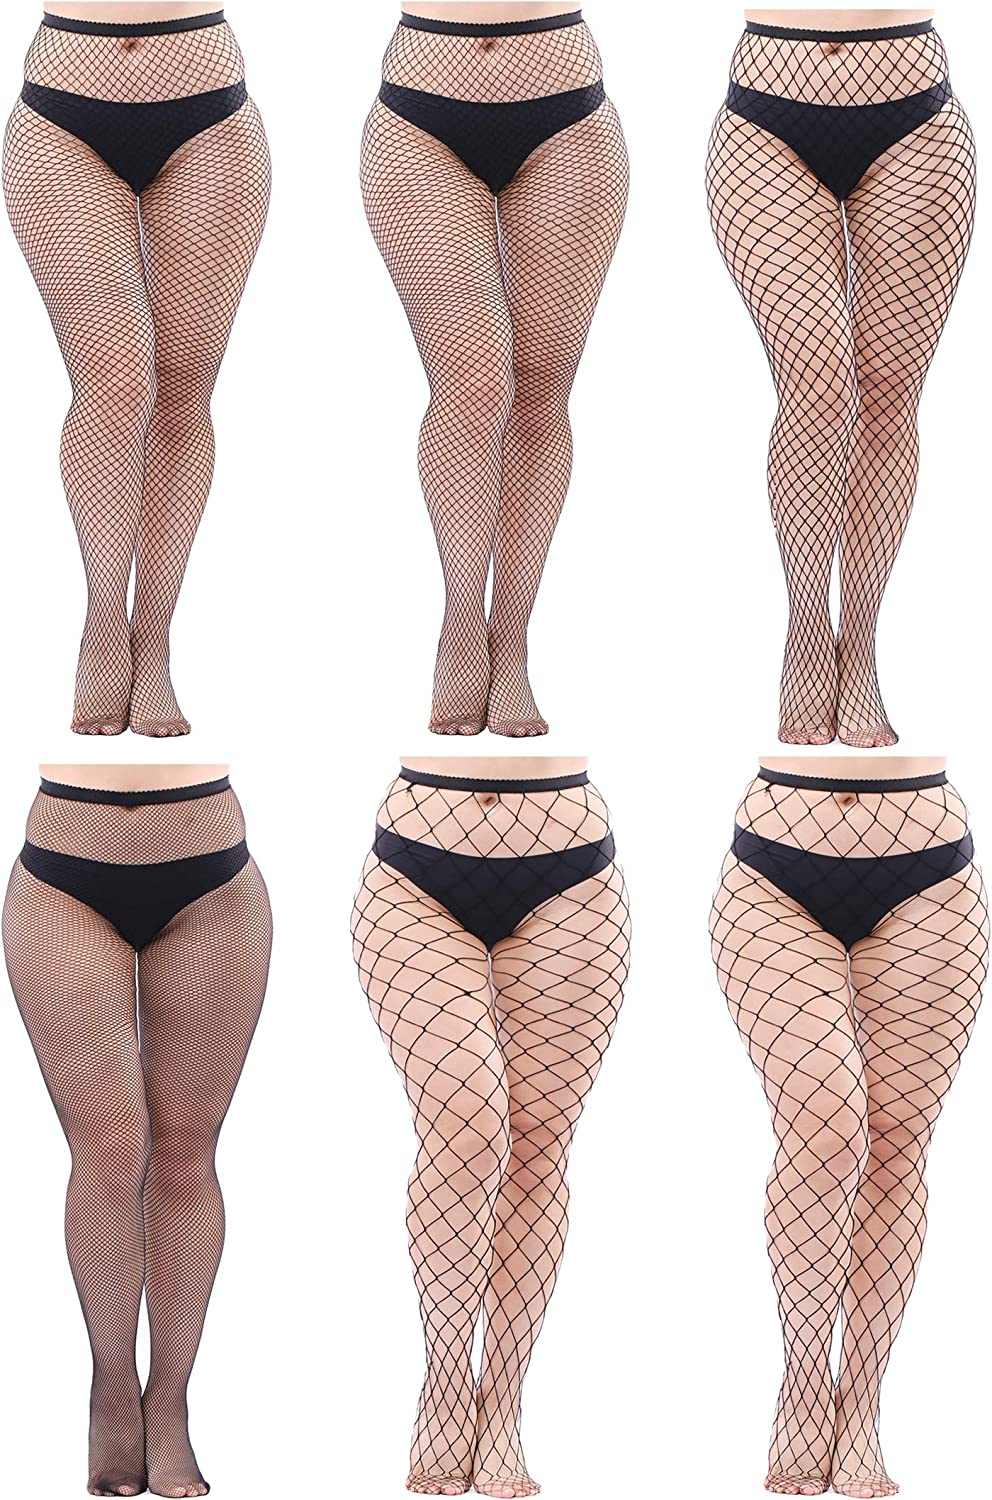 Aneco 6 Pairs Plus Size Fishnets Tights Sexy Thigh High Stockings Pantyhose Stockings Cross Mesh Tights Fishnet